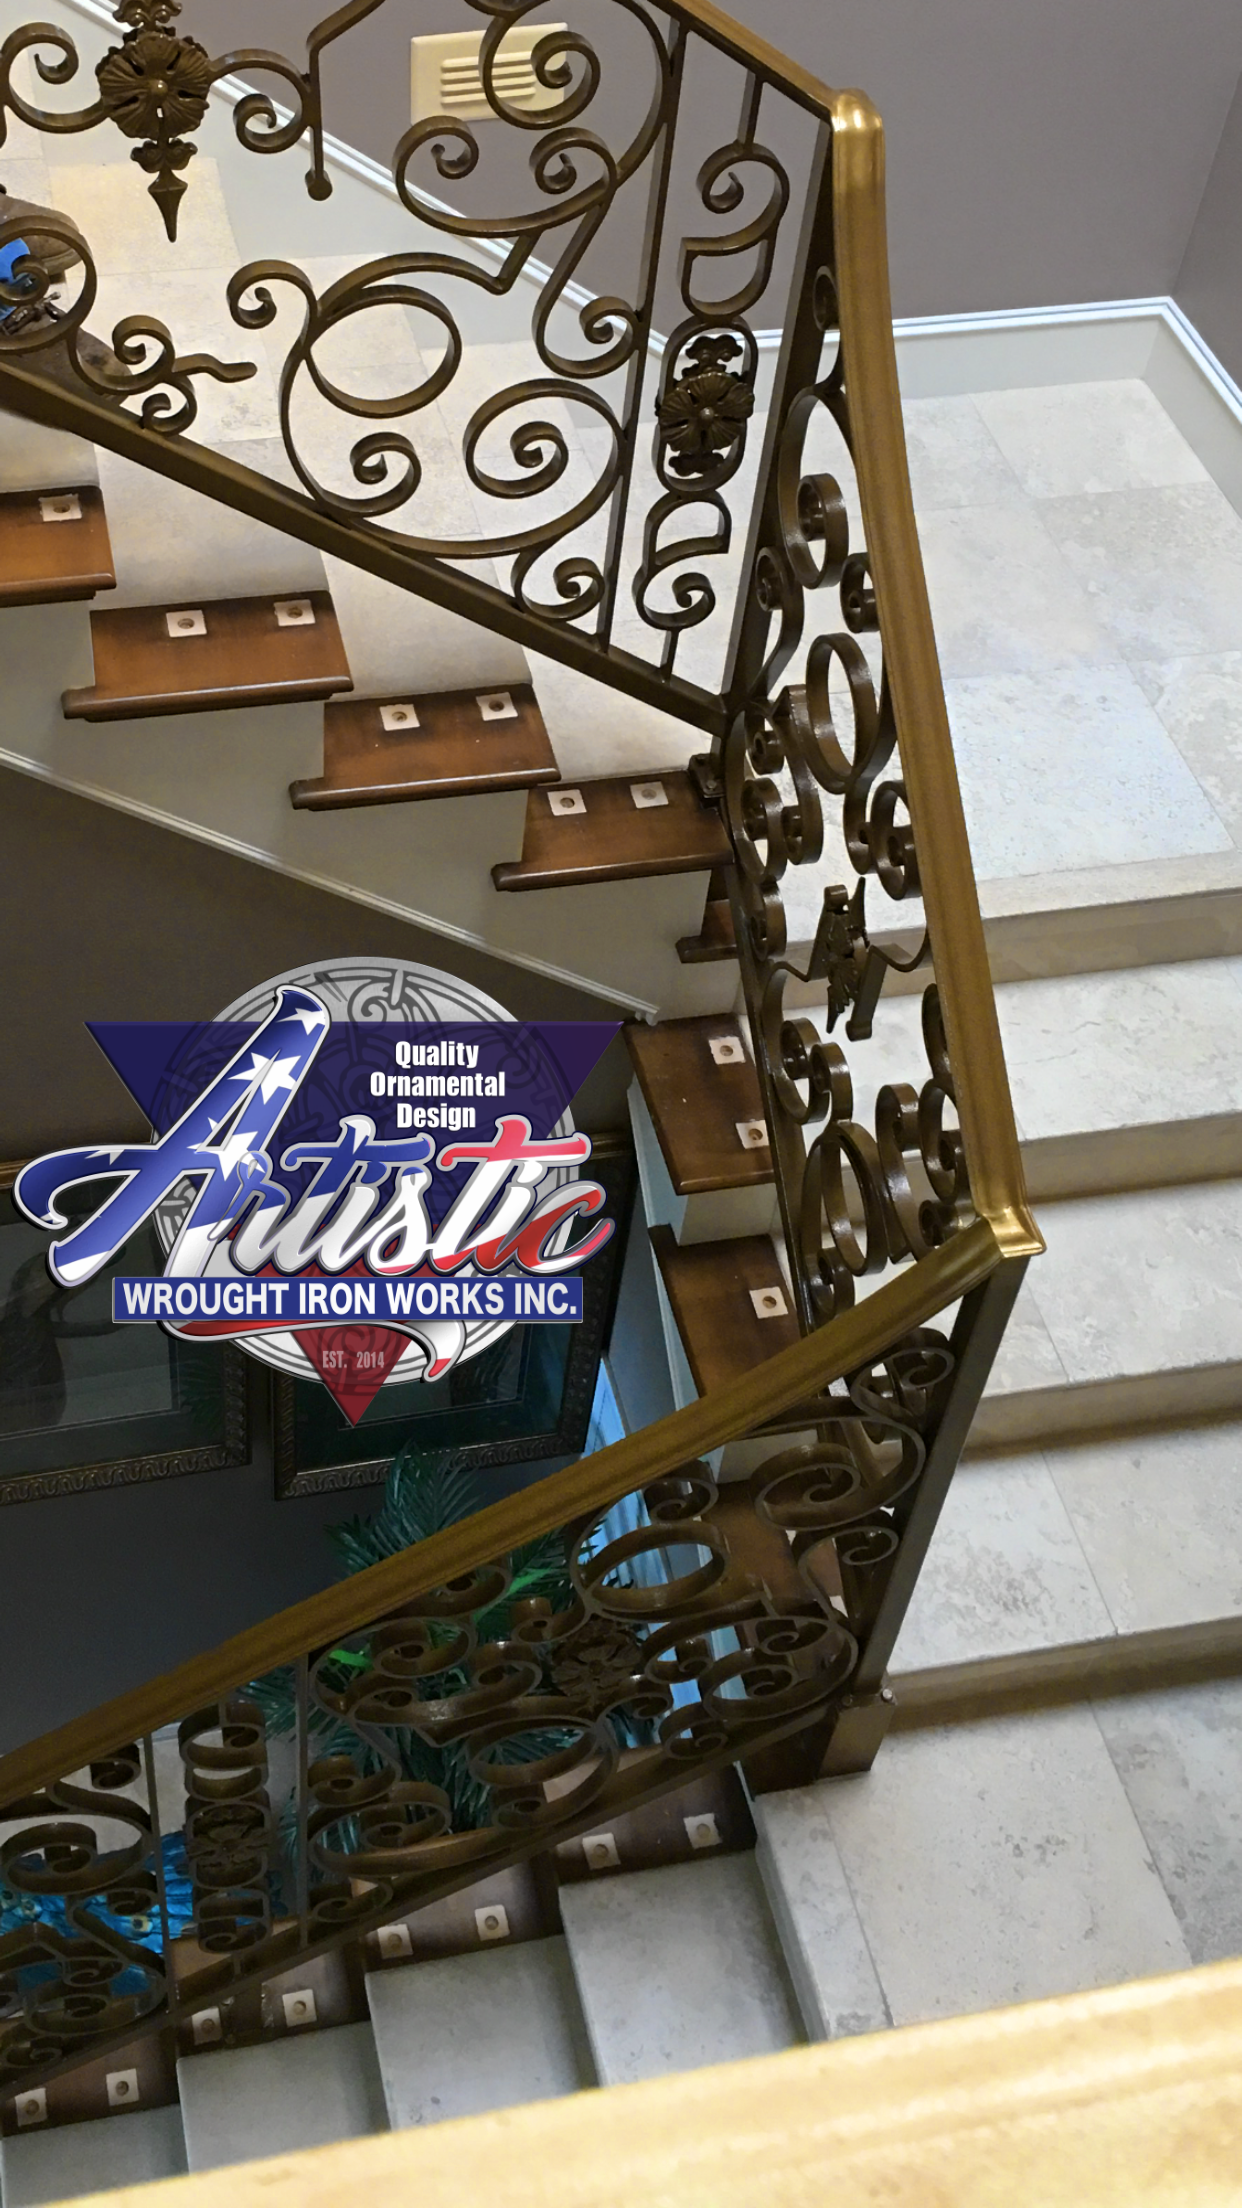 Custom Wrought Iron Stair Rail For House Decals Artistic Wrought Iron Works Inc